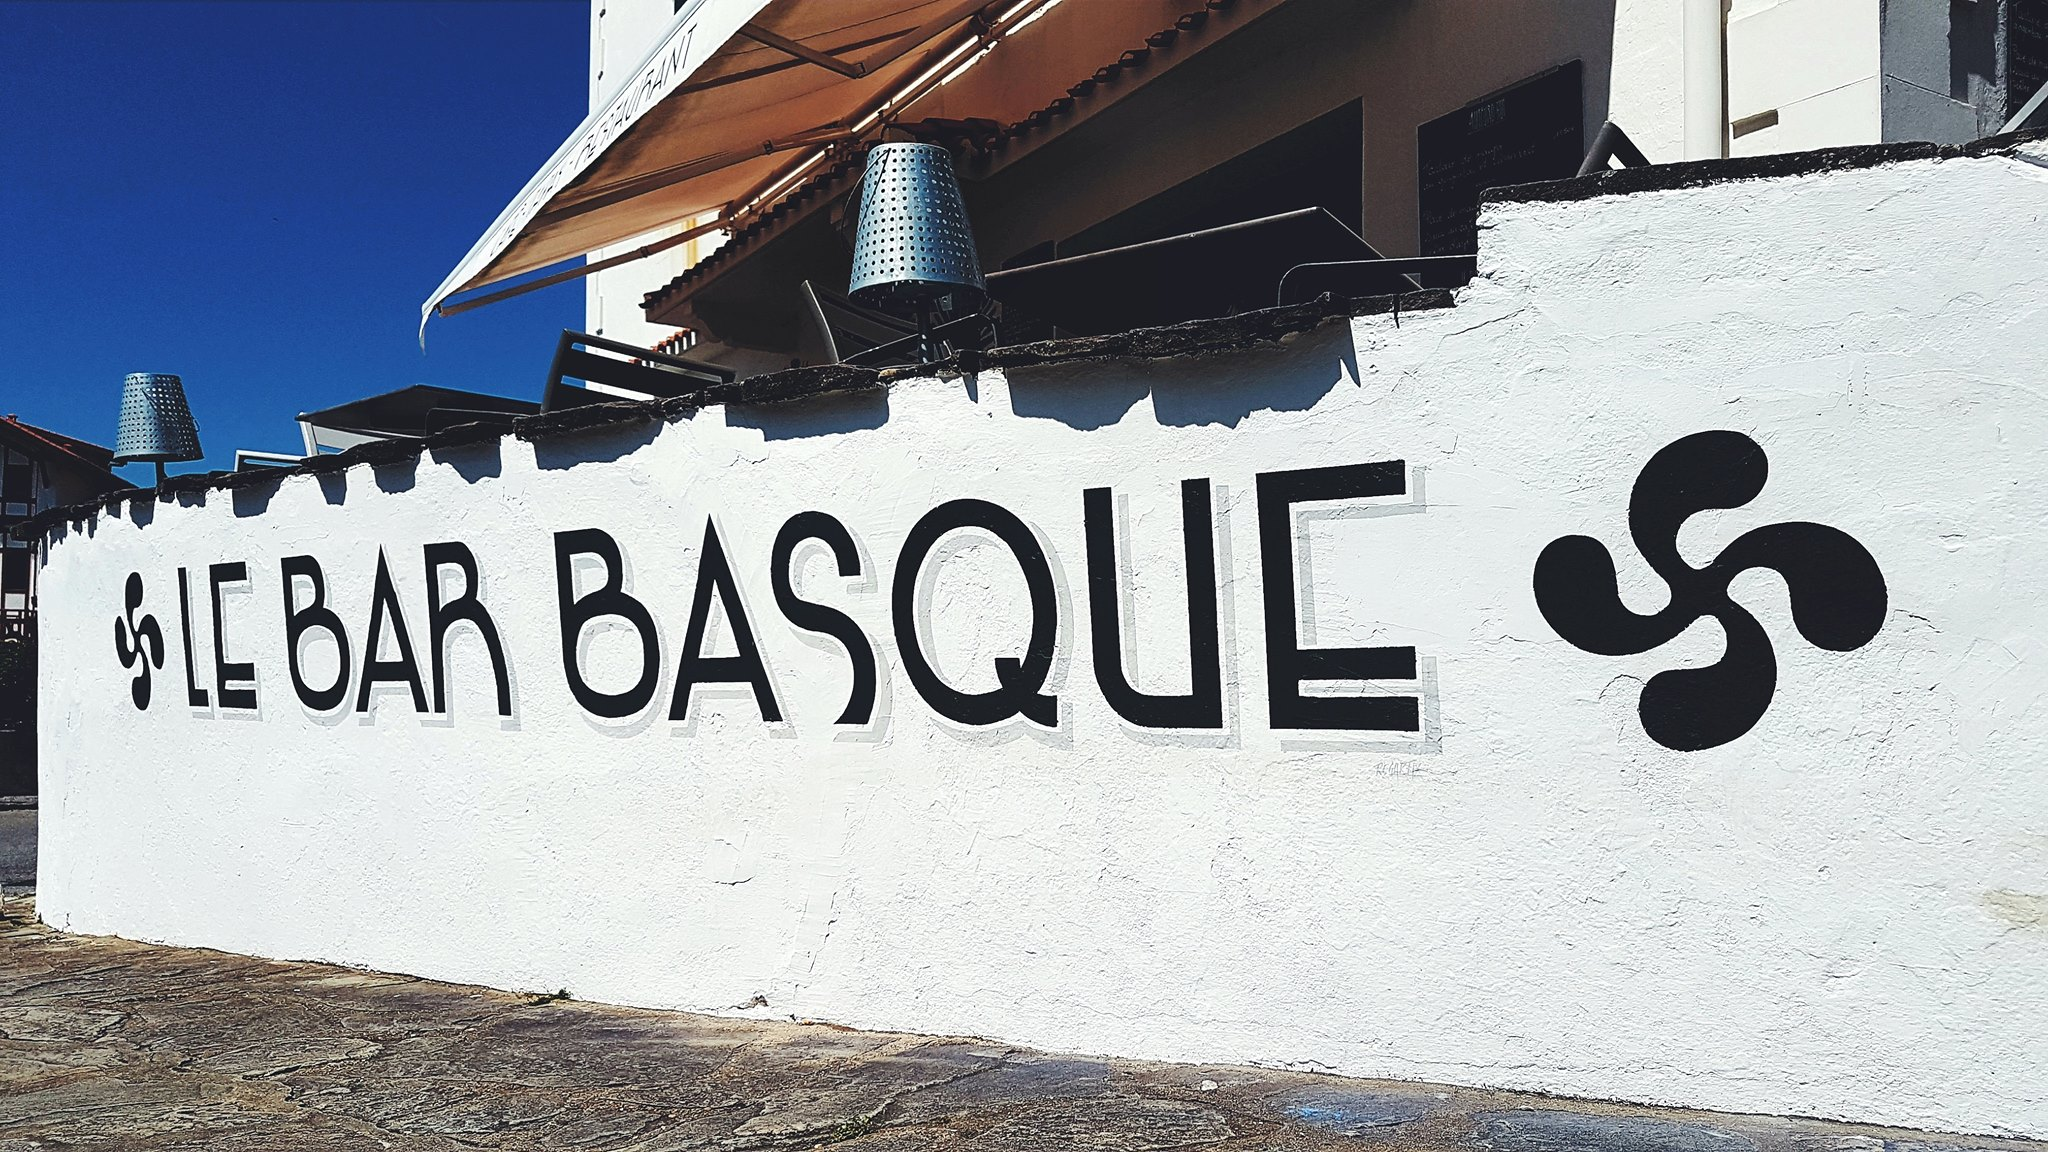 Le Bar Basque